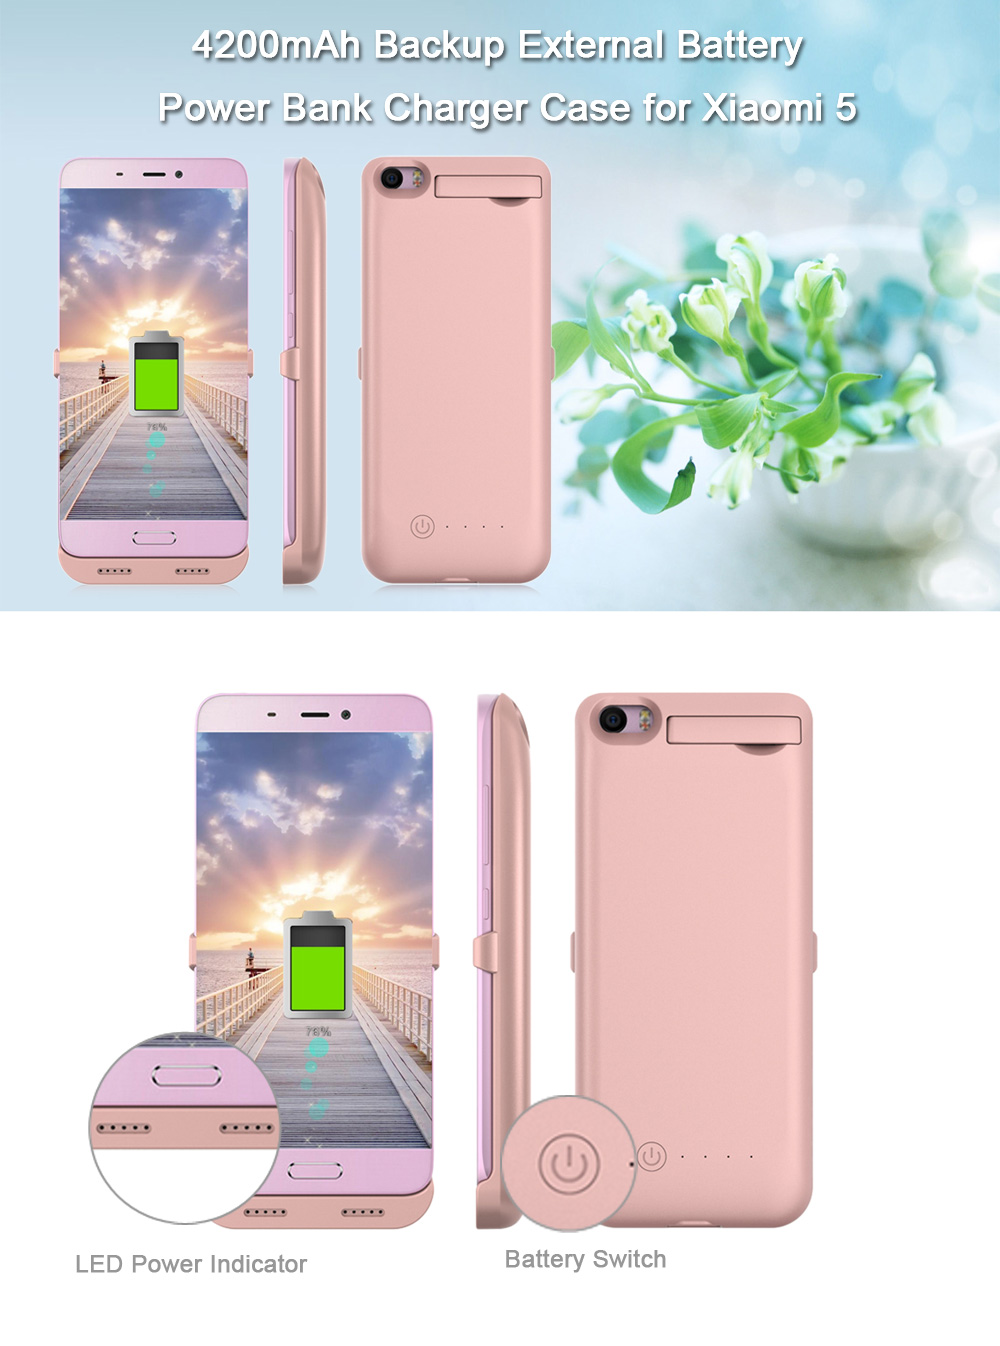 4200mAh Backup Battery External Power Bank Charger Cover for Xiaomi 5